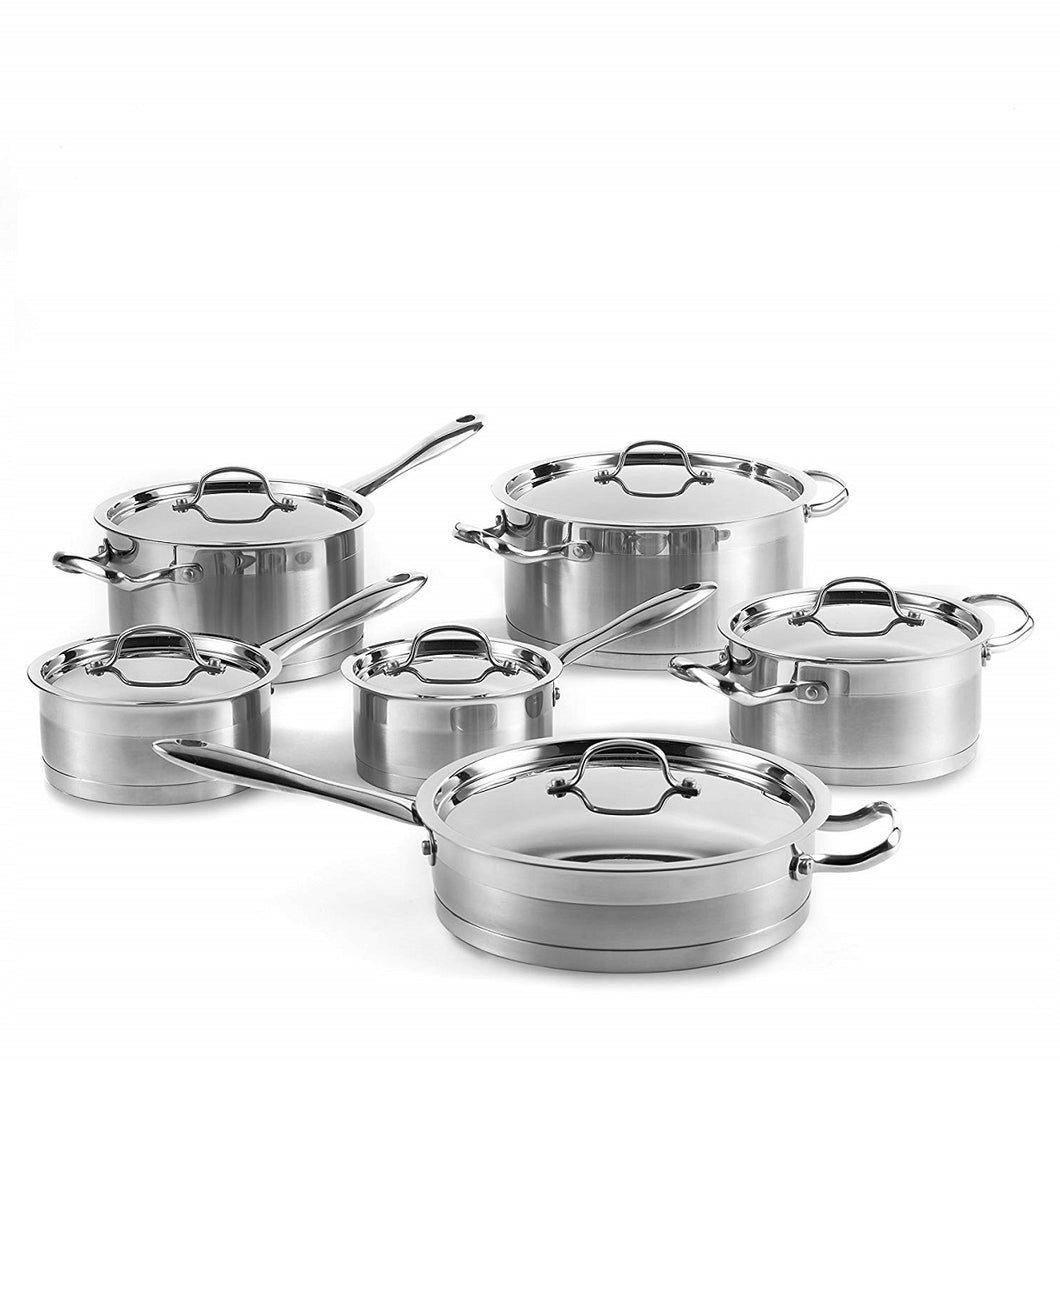 Lagostina Stainless Steel cookware set